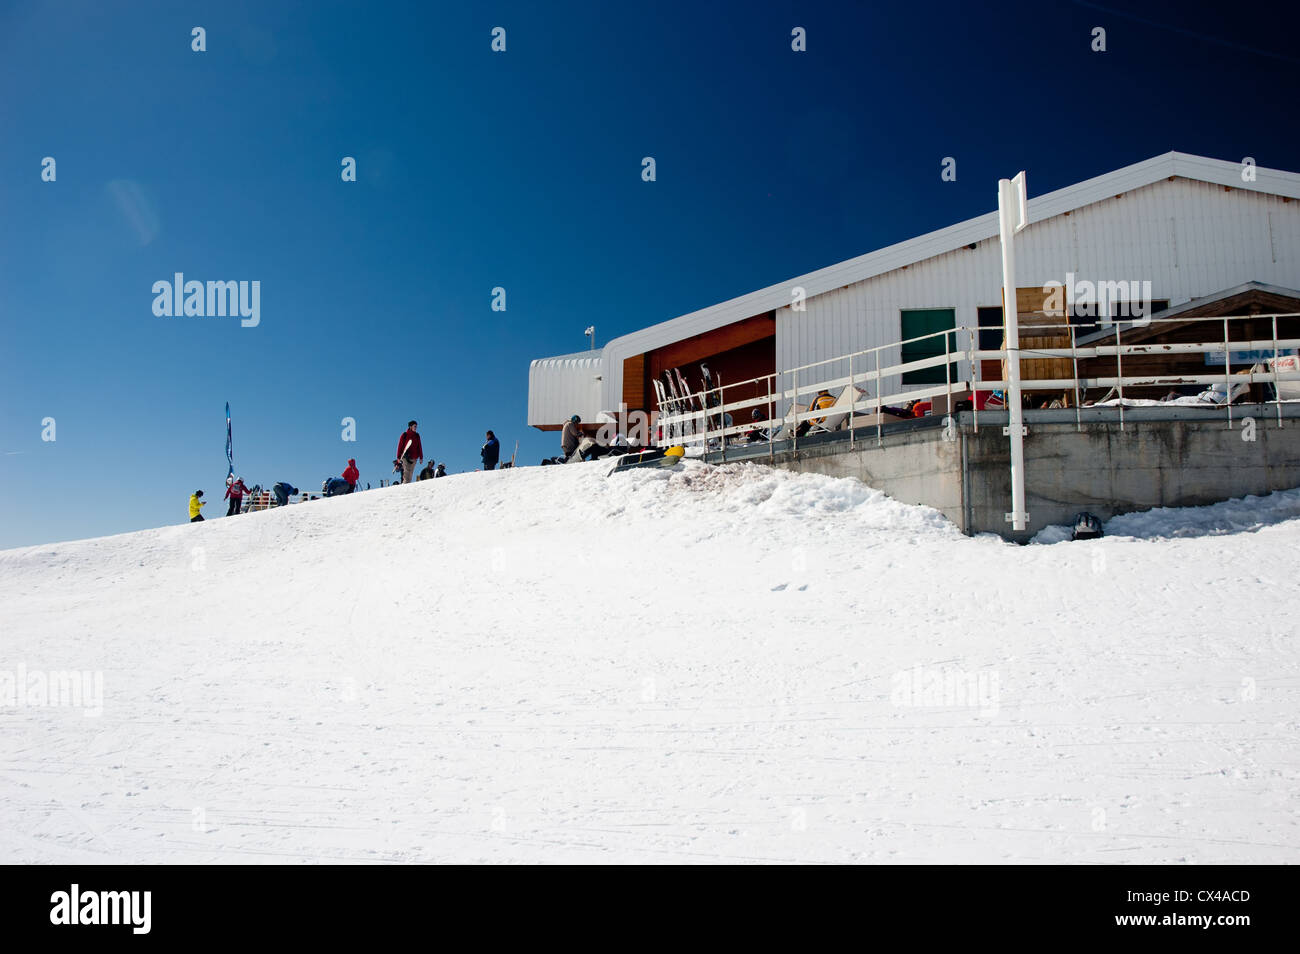 Restaurant high up in the mountains, at the end of a skiing slope - Stock Image